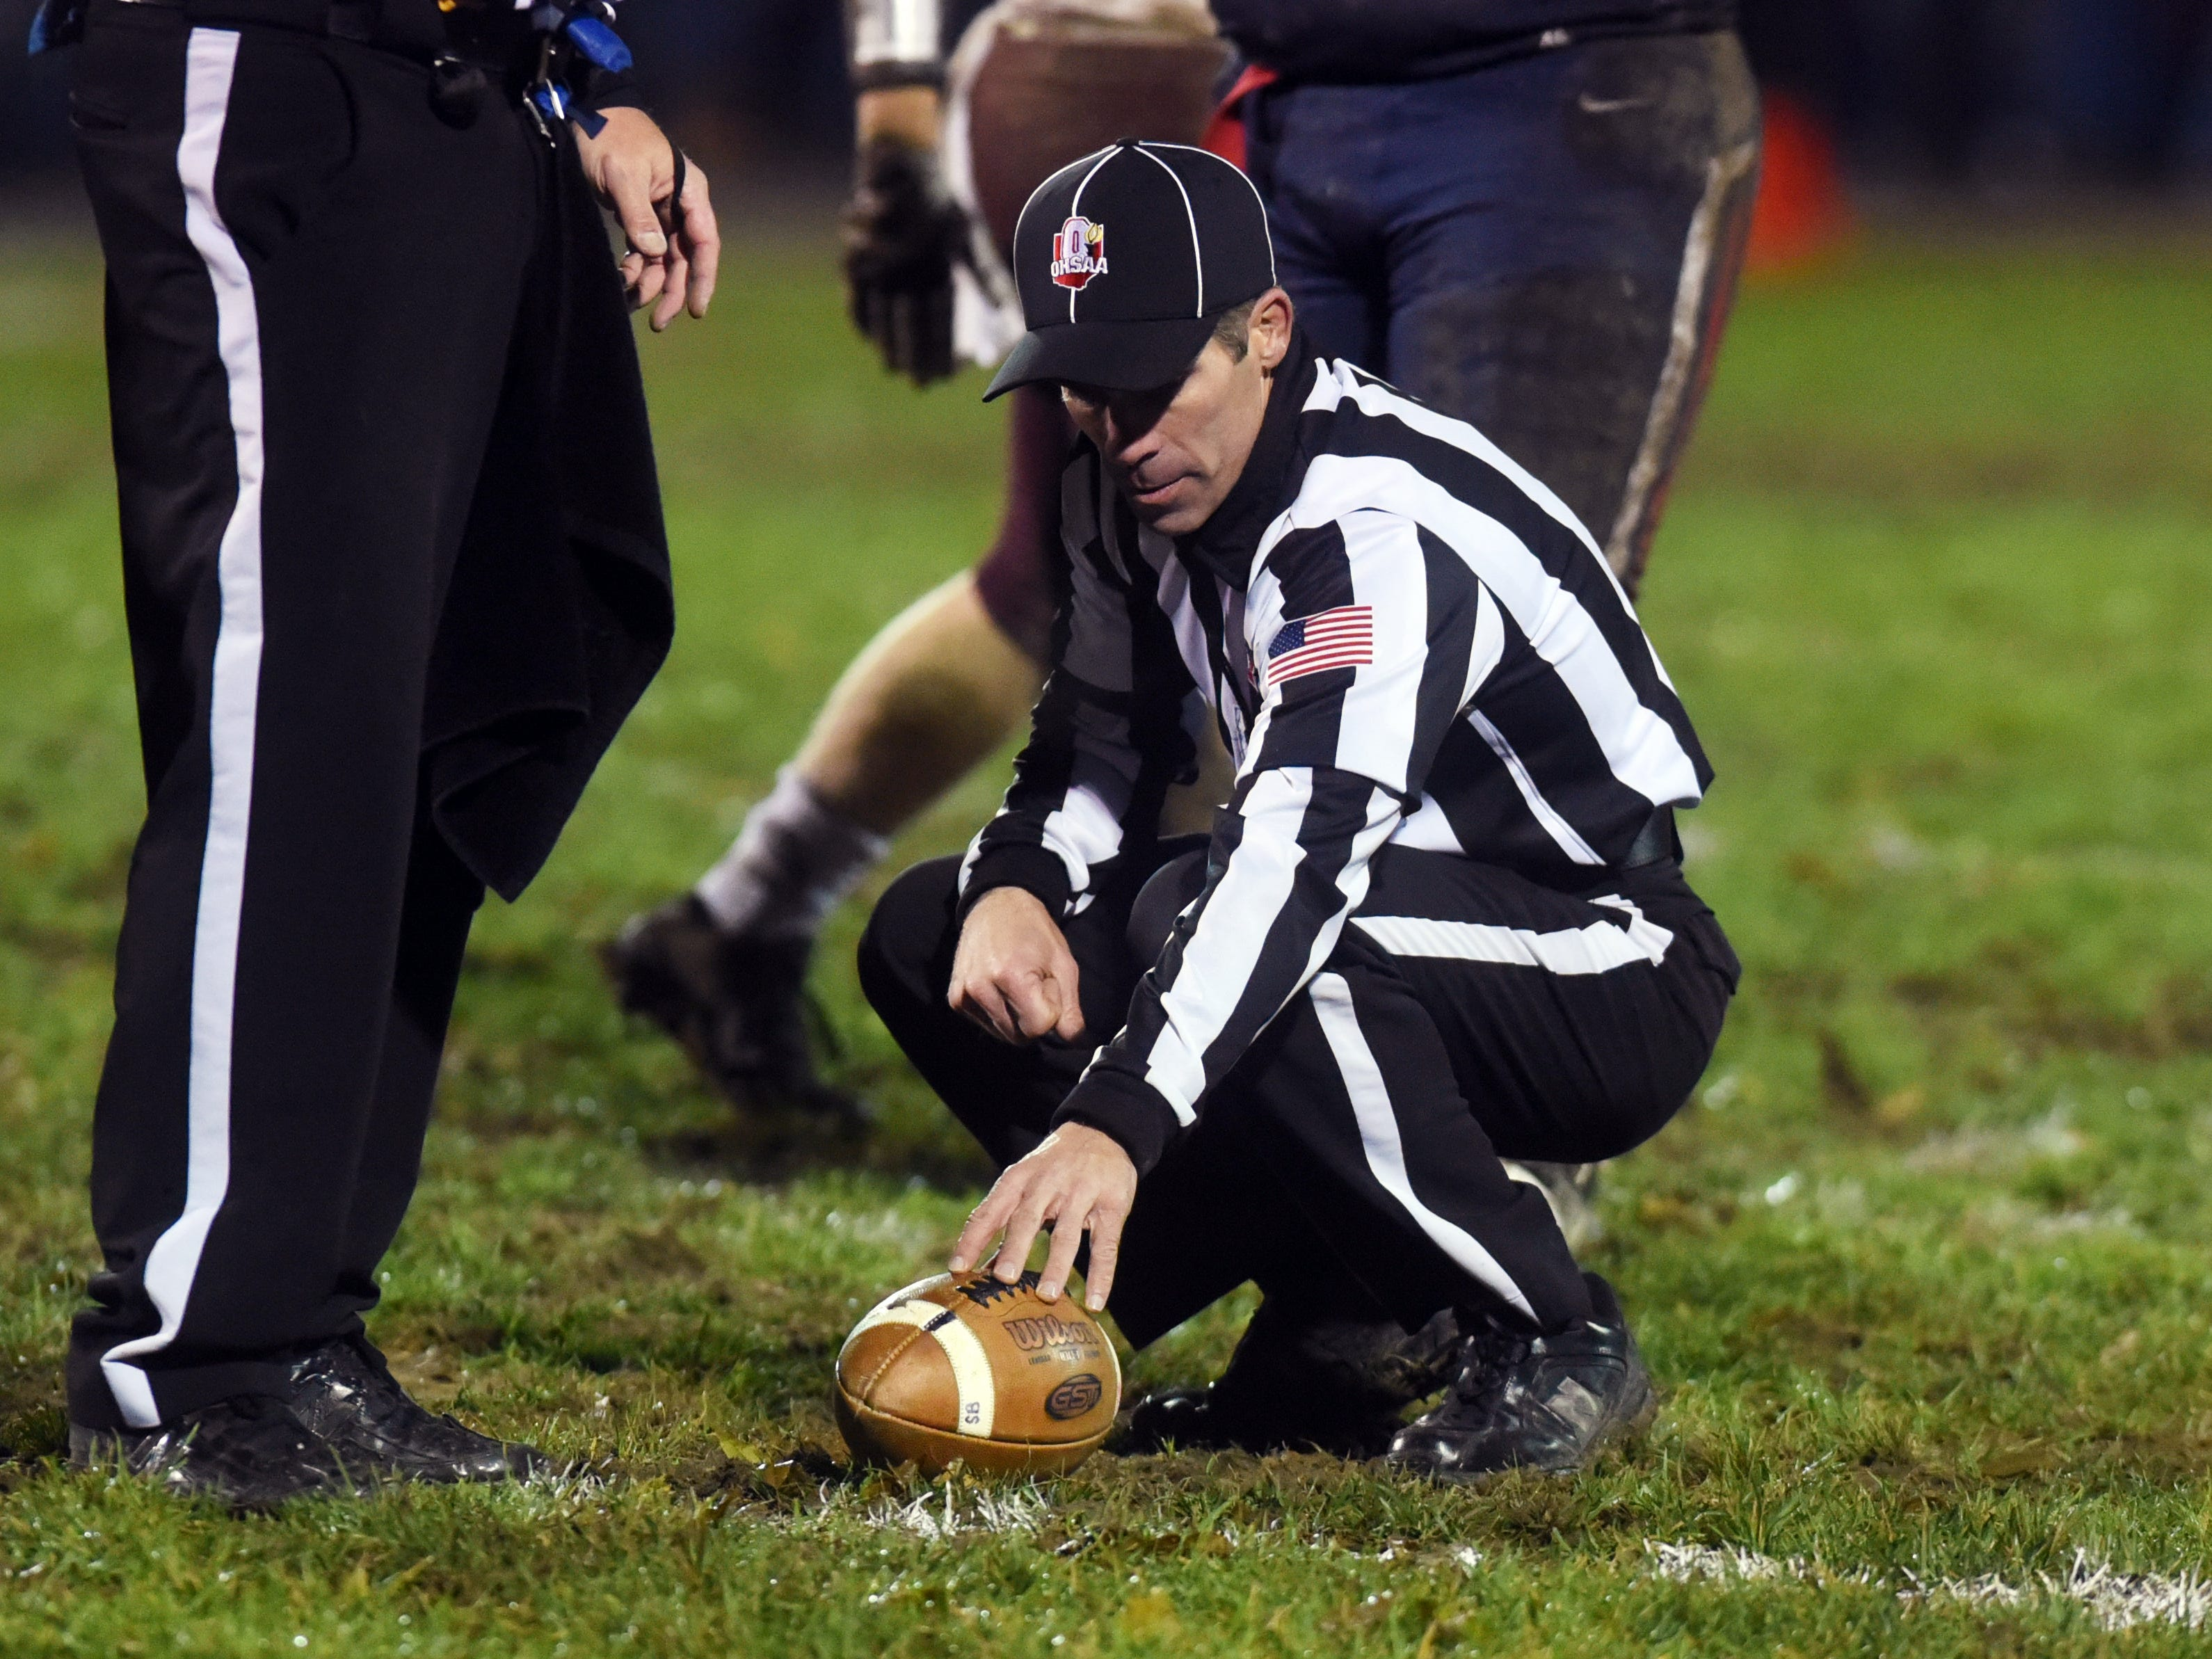 On official measures for a first down late in the fourth quarter of John Glenn's 16-14 playoff loss to host Gnadenhutten Indian Valley on Saturday night.